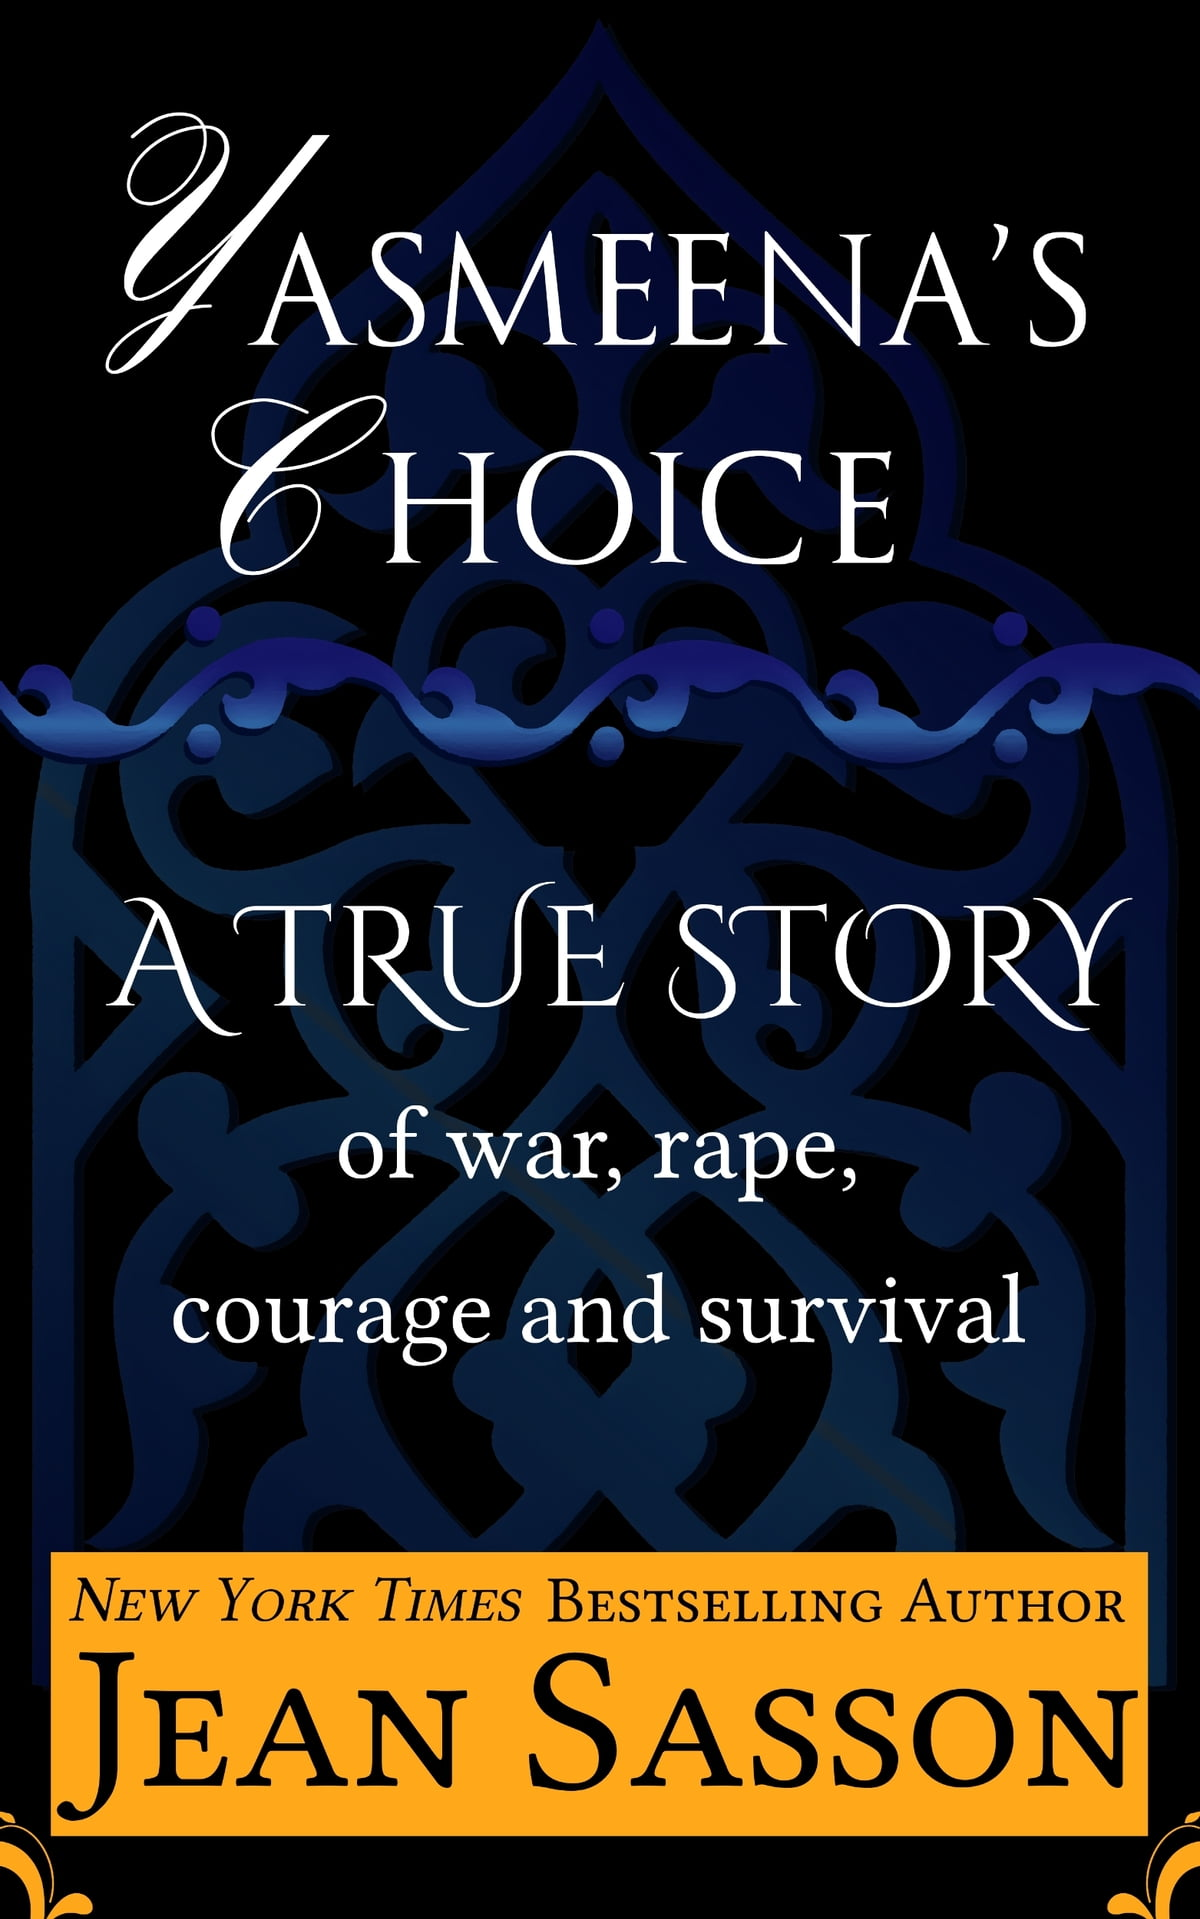 Princess a true story of life behind the veil ebook by jean sasson yasmeenas choice a true story of war rape courage and survival ebook by fandeluxe Image collections